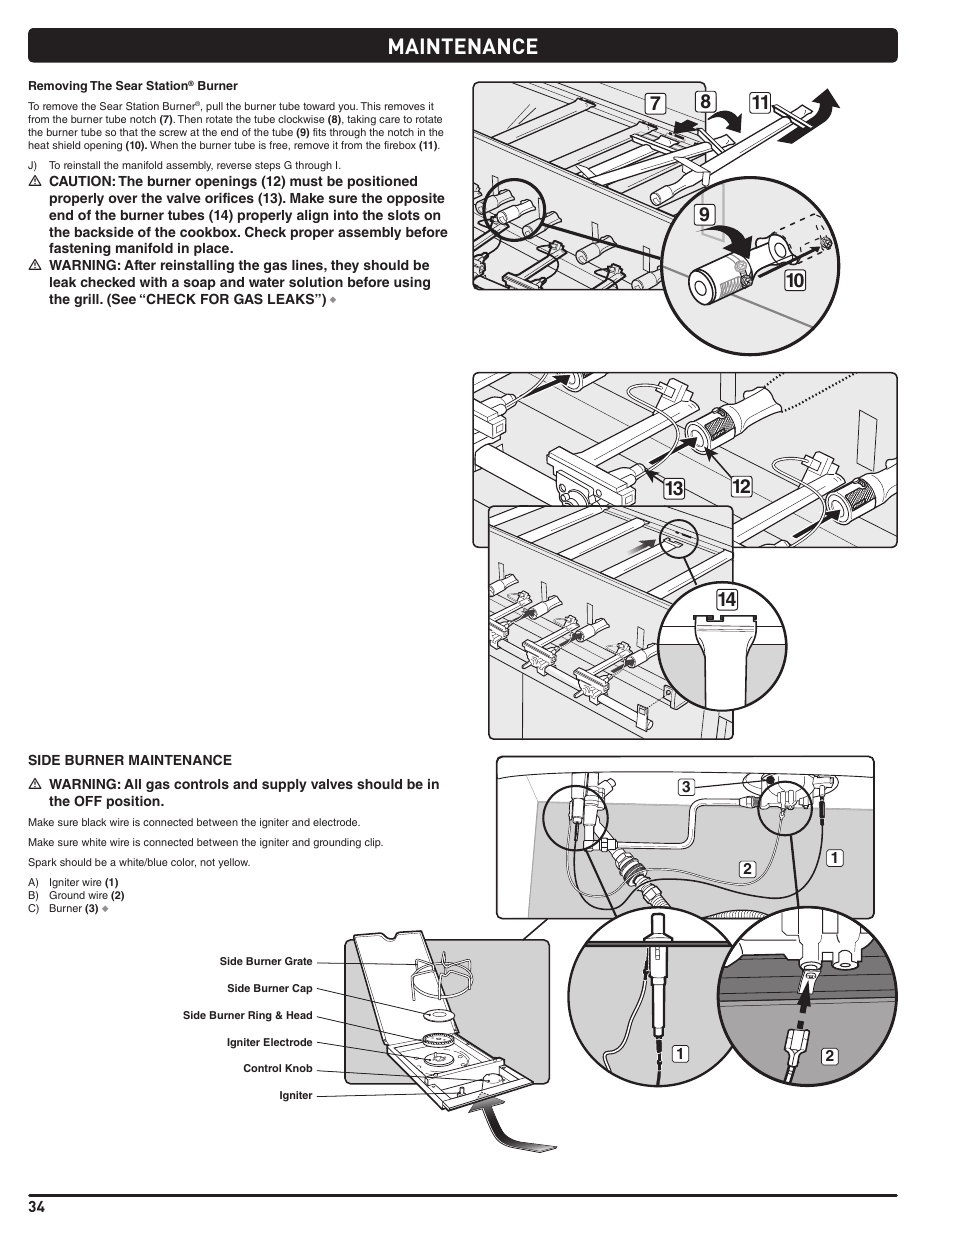 Burners Power Diagrams Flame Wiring G J0820794 Wire Center \u2022  Refrigerator Thermostat Wiring Diagram Power Flame Burner Wiring Diagram